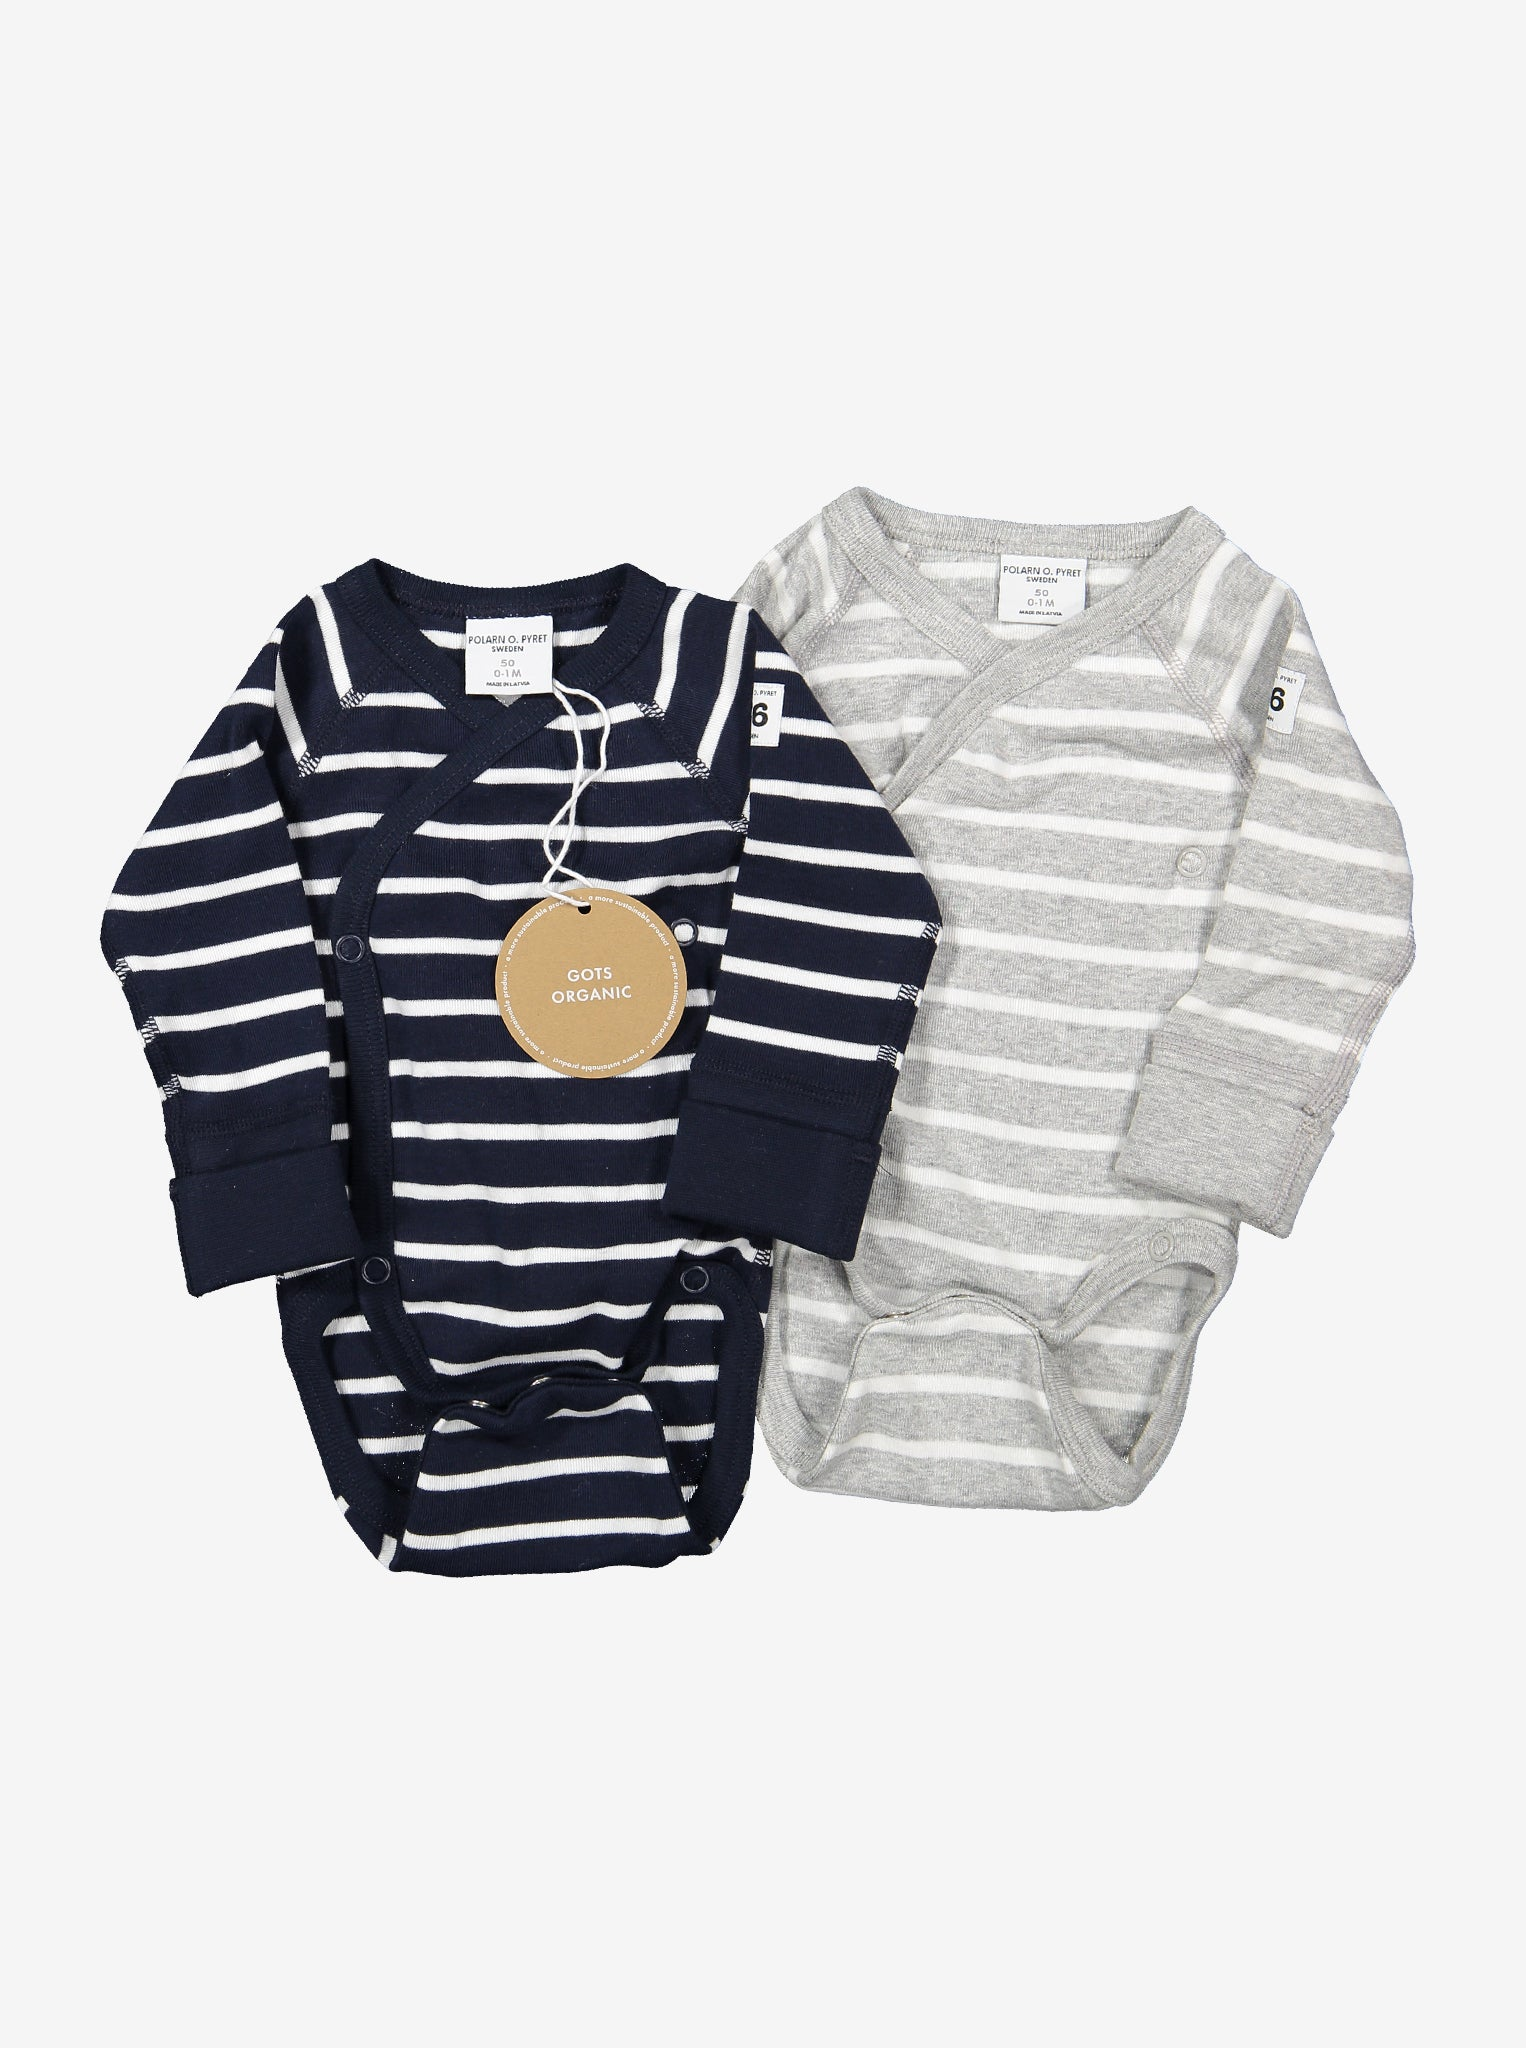 Set of two striped organic cotton babygrows in two colours, navy blue and white on the left and white and grey on the right.